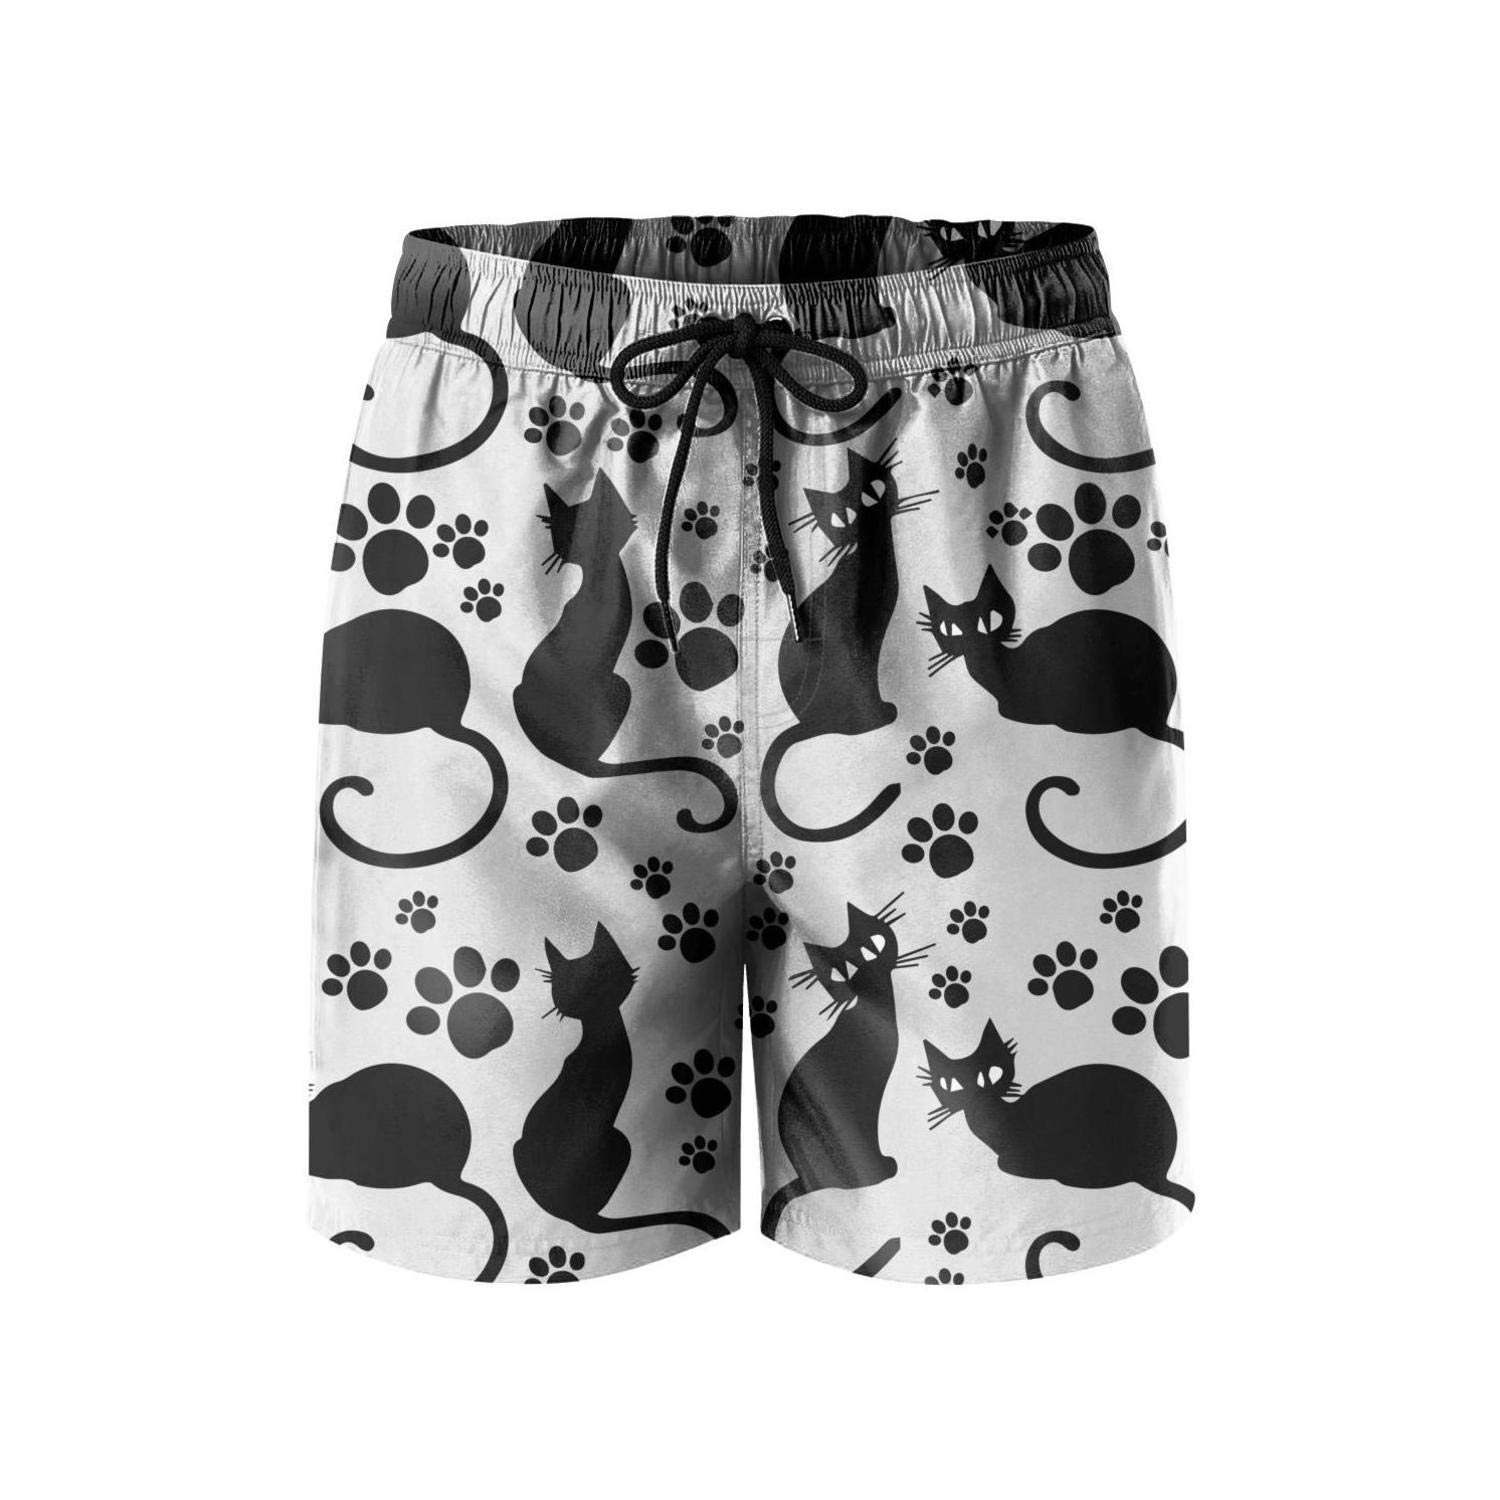 A lot of Black Cats Stars Mens Swimming Trunks Street Swimwear high Waisted Board Shorts